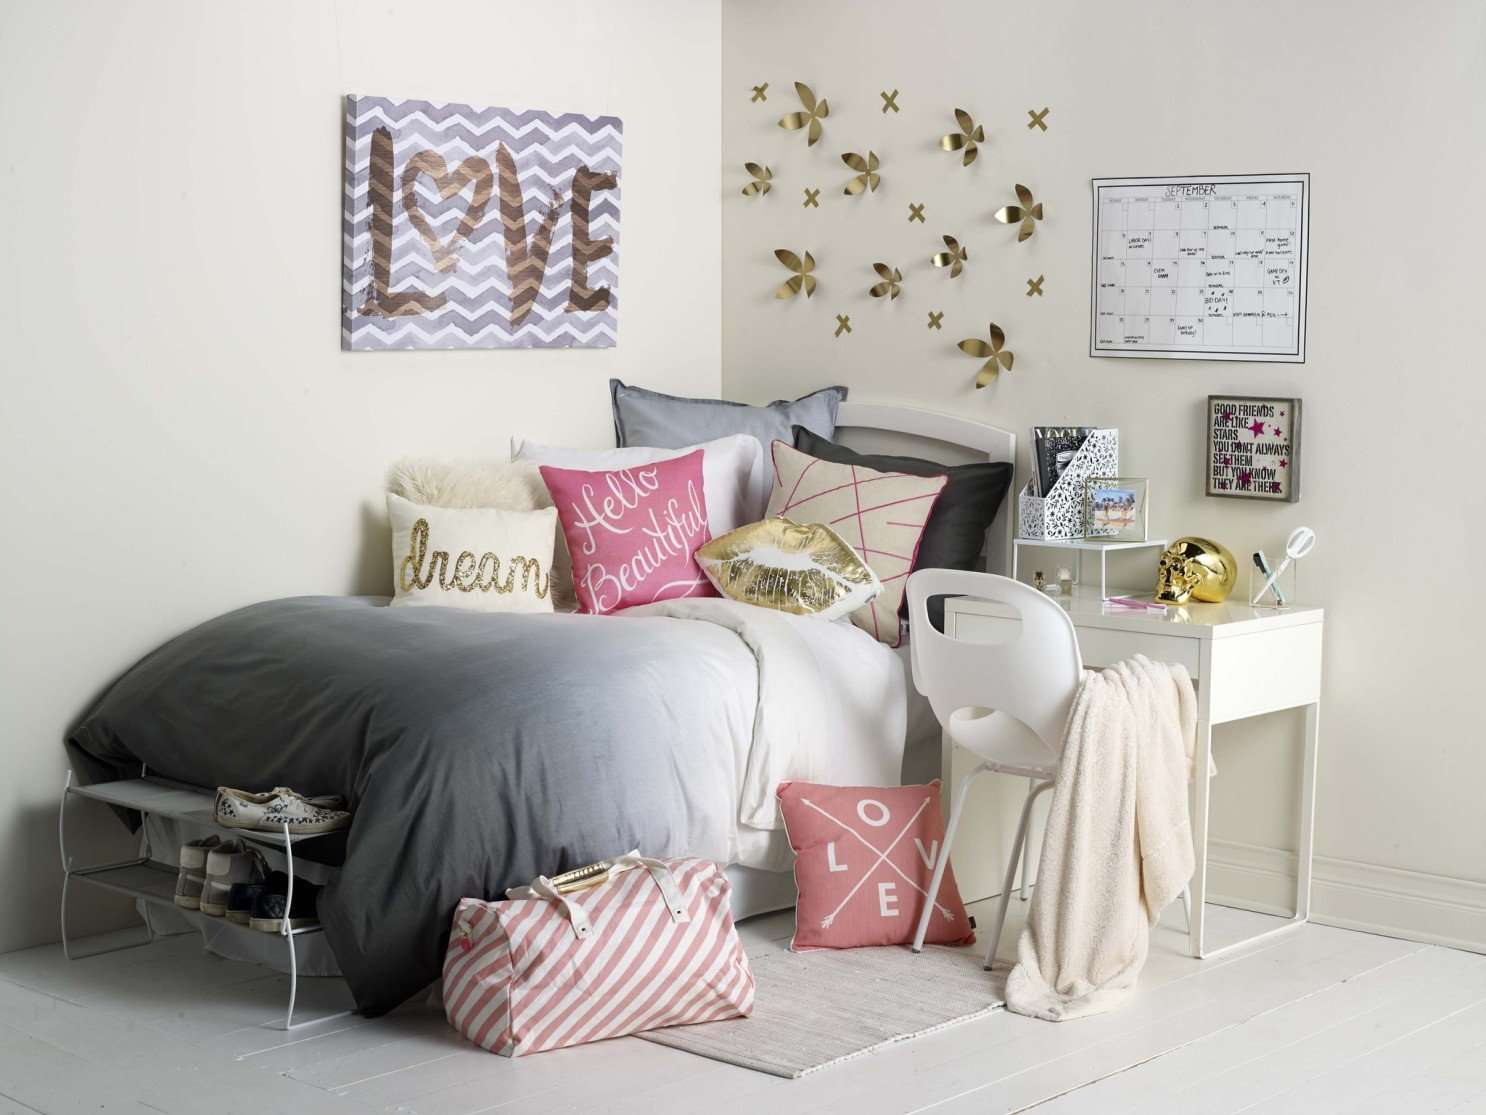 Space Decor for Bedroom Inspirational Dorm Room Design Goes A Few Degrees Beyond the Milk Crate